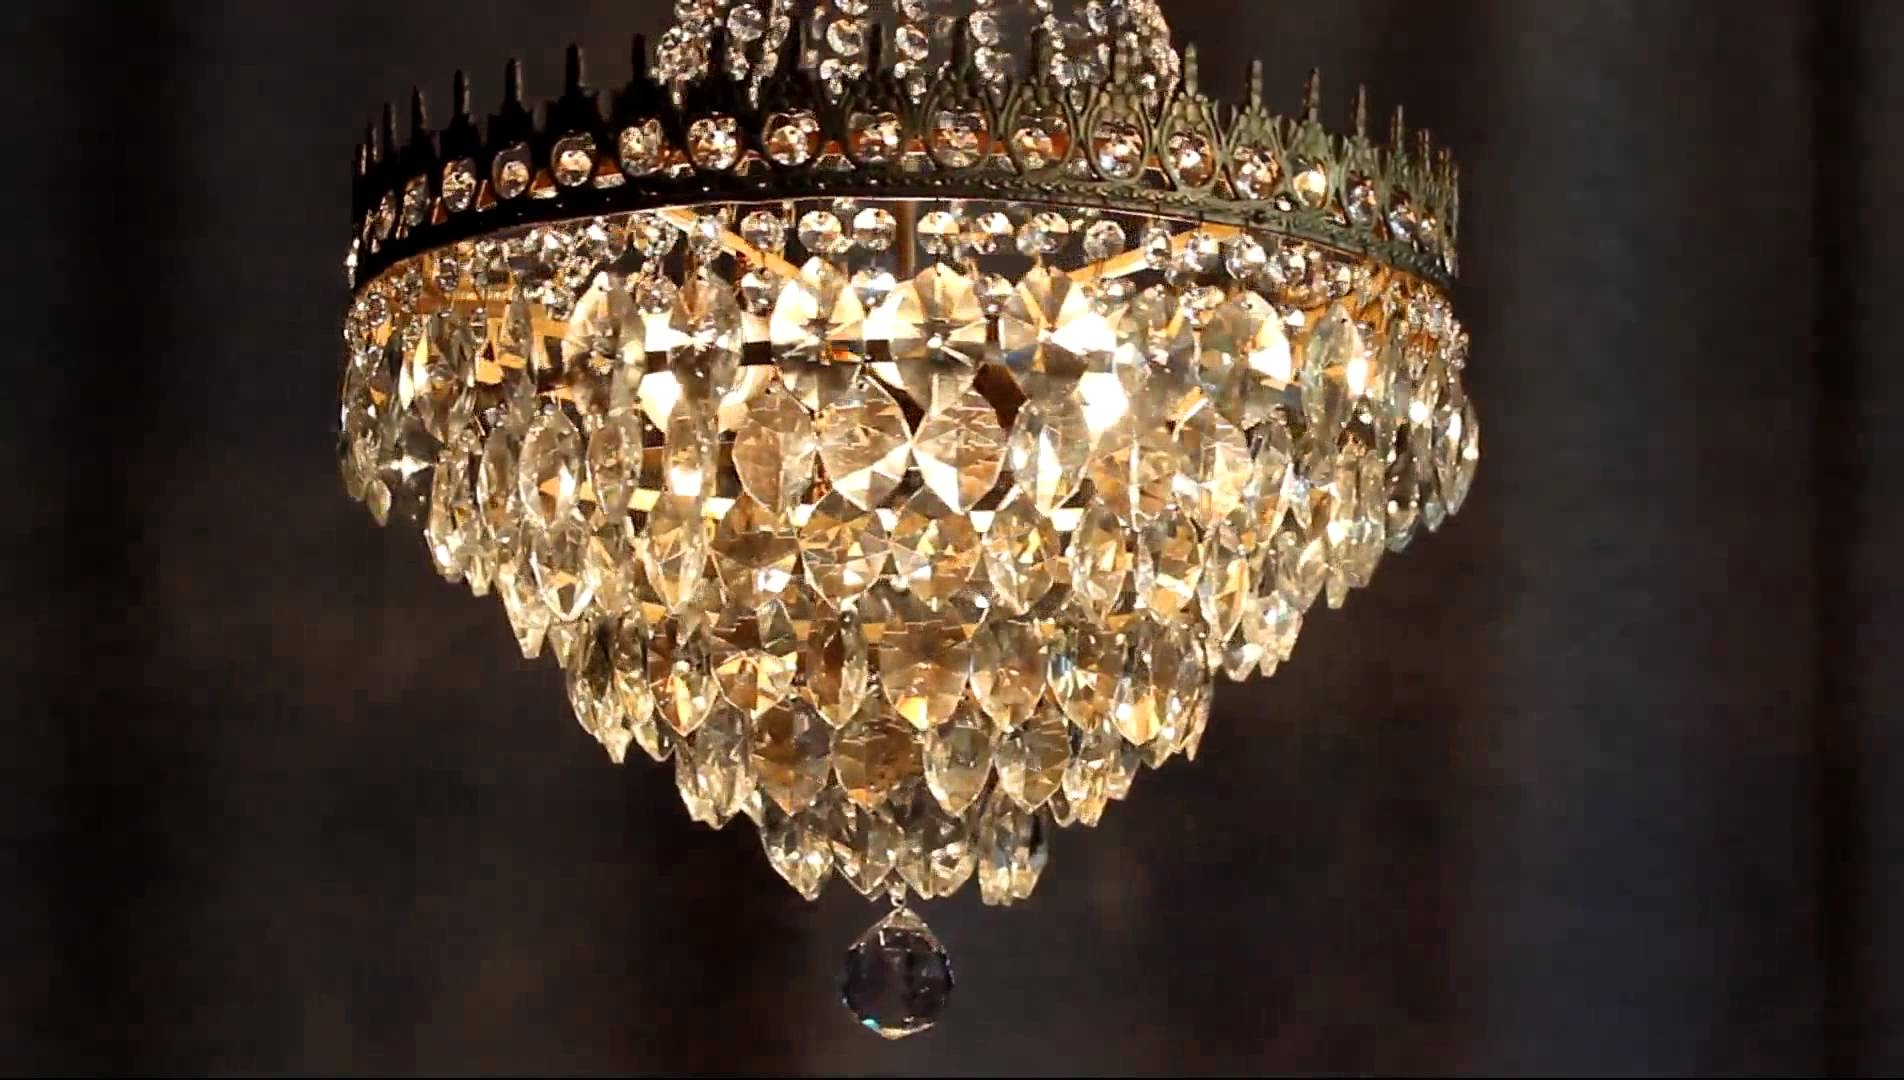 Huge Antique Luster Crystal Candelabra Chandelier Lighting Brass Throughout Huge Crystal Chandelier (View 9 of 15)